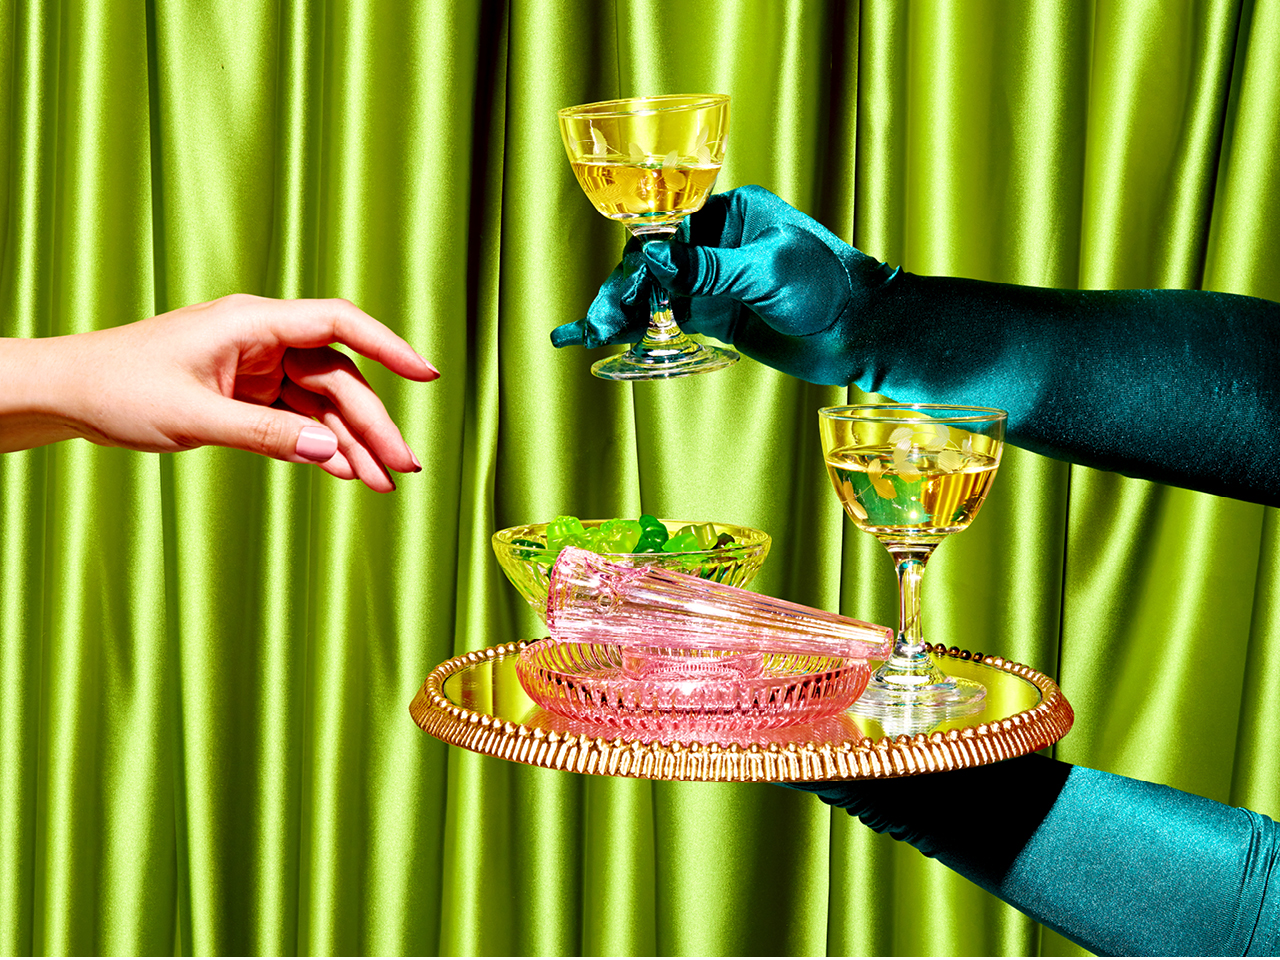 A photo of gloved hands holding a tray carrying wine glasses and ashtrays